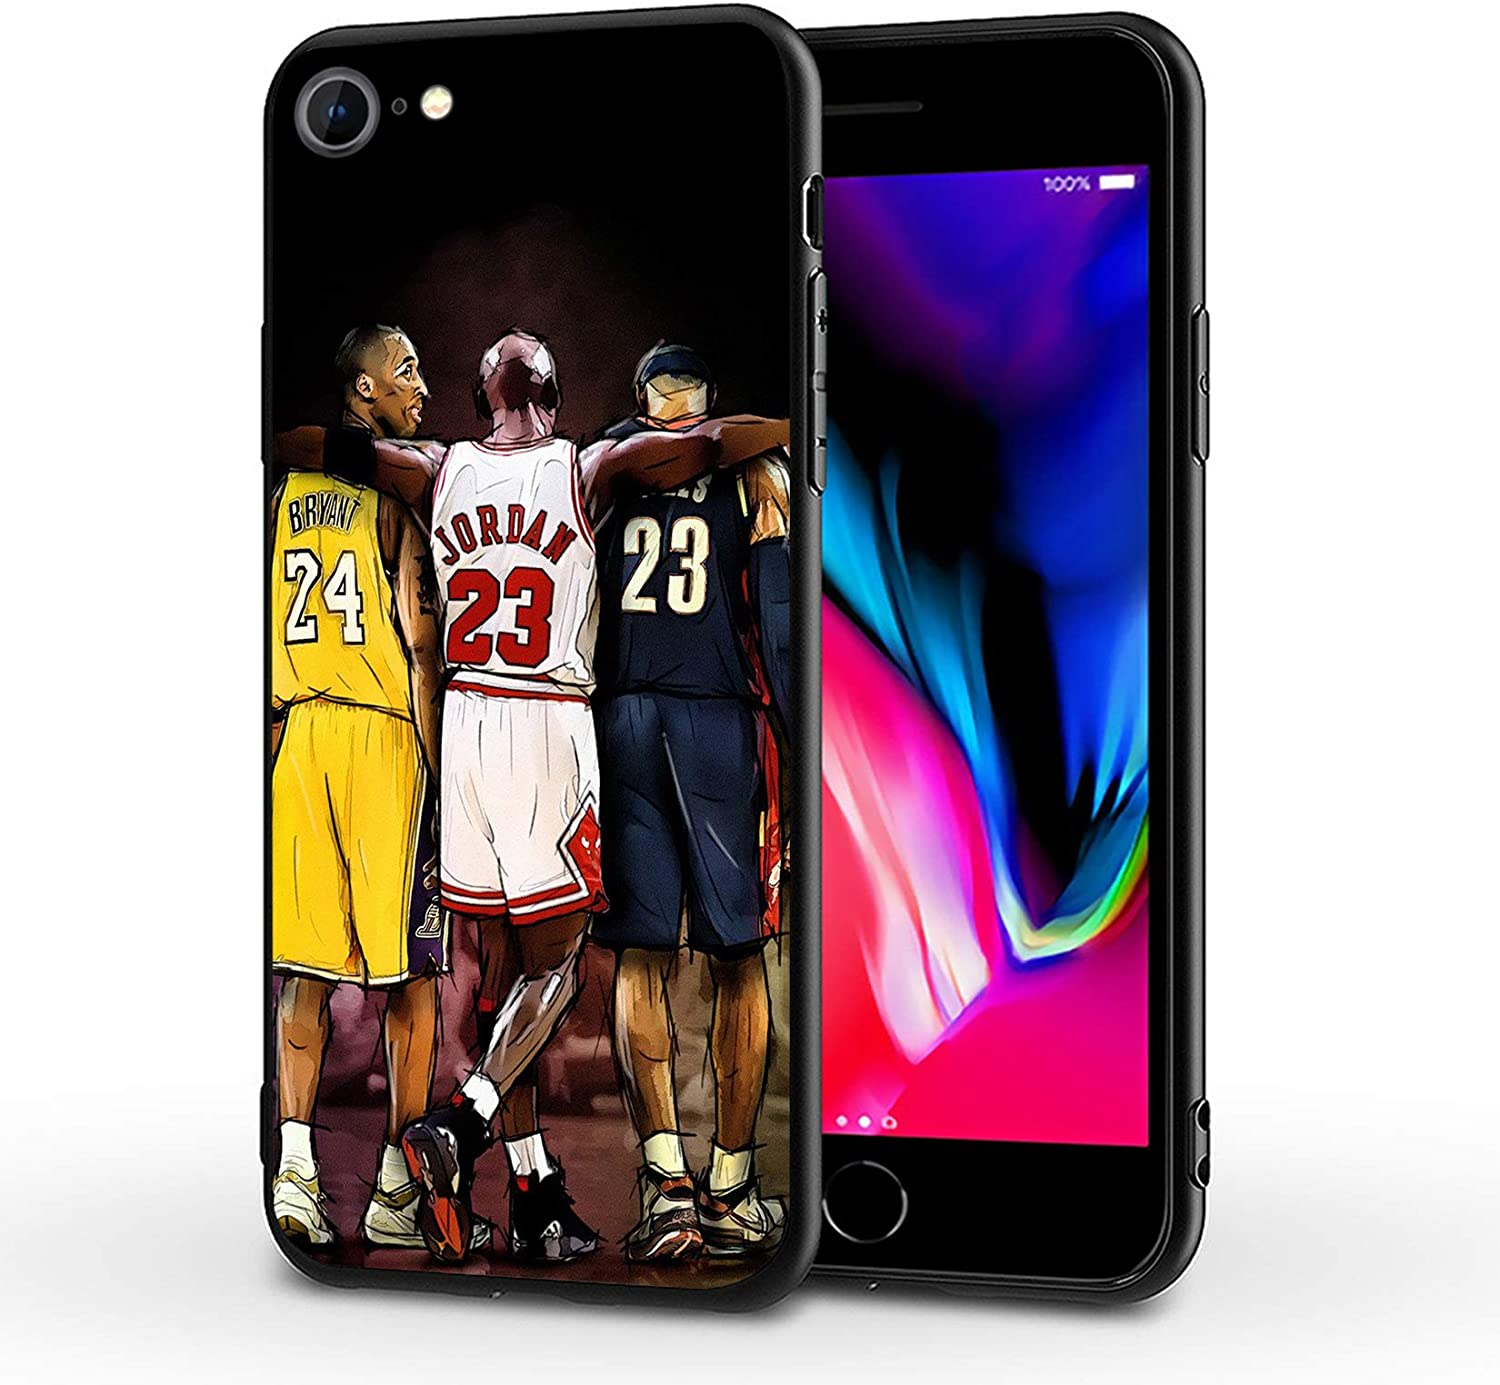 SUPTIIN iPhone SE 2020 Case iPhone 8 Case iPhone 7 Case,Basketball Star Protective Shockproof Anti-Scratch Soft Bumper Cover Cases (Kobe-MJ-Lebron)